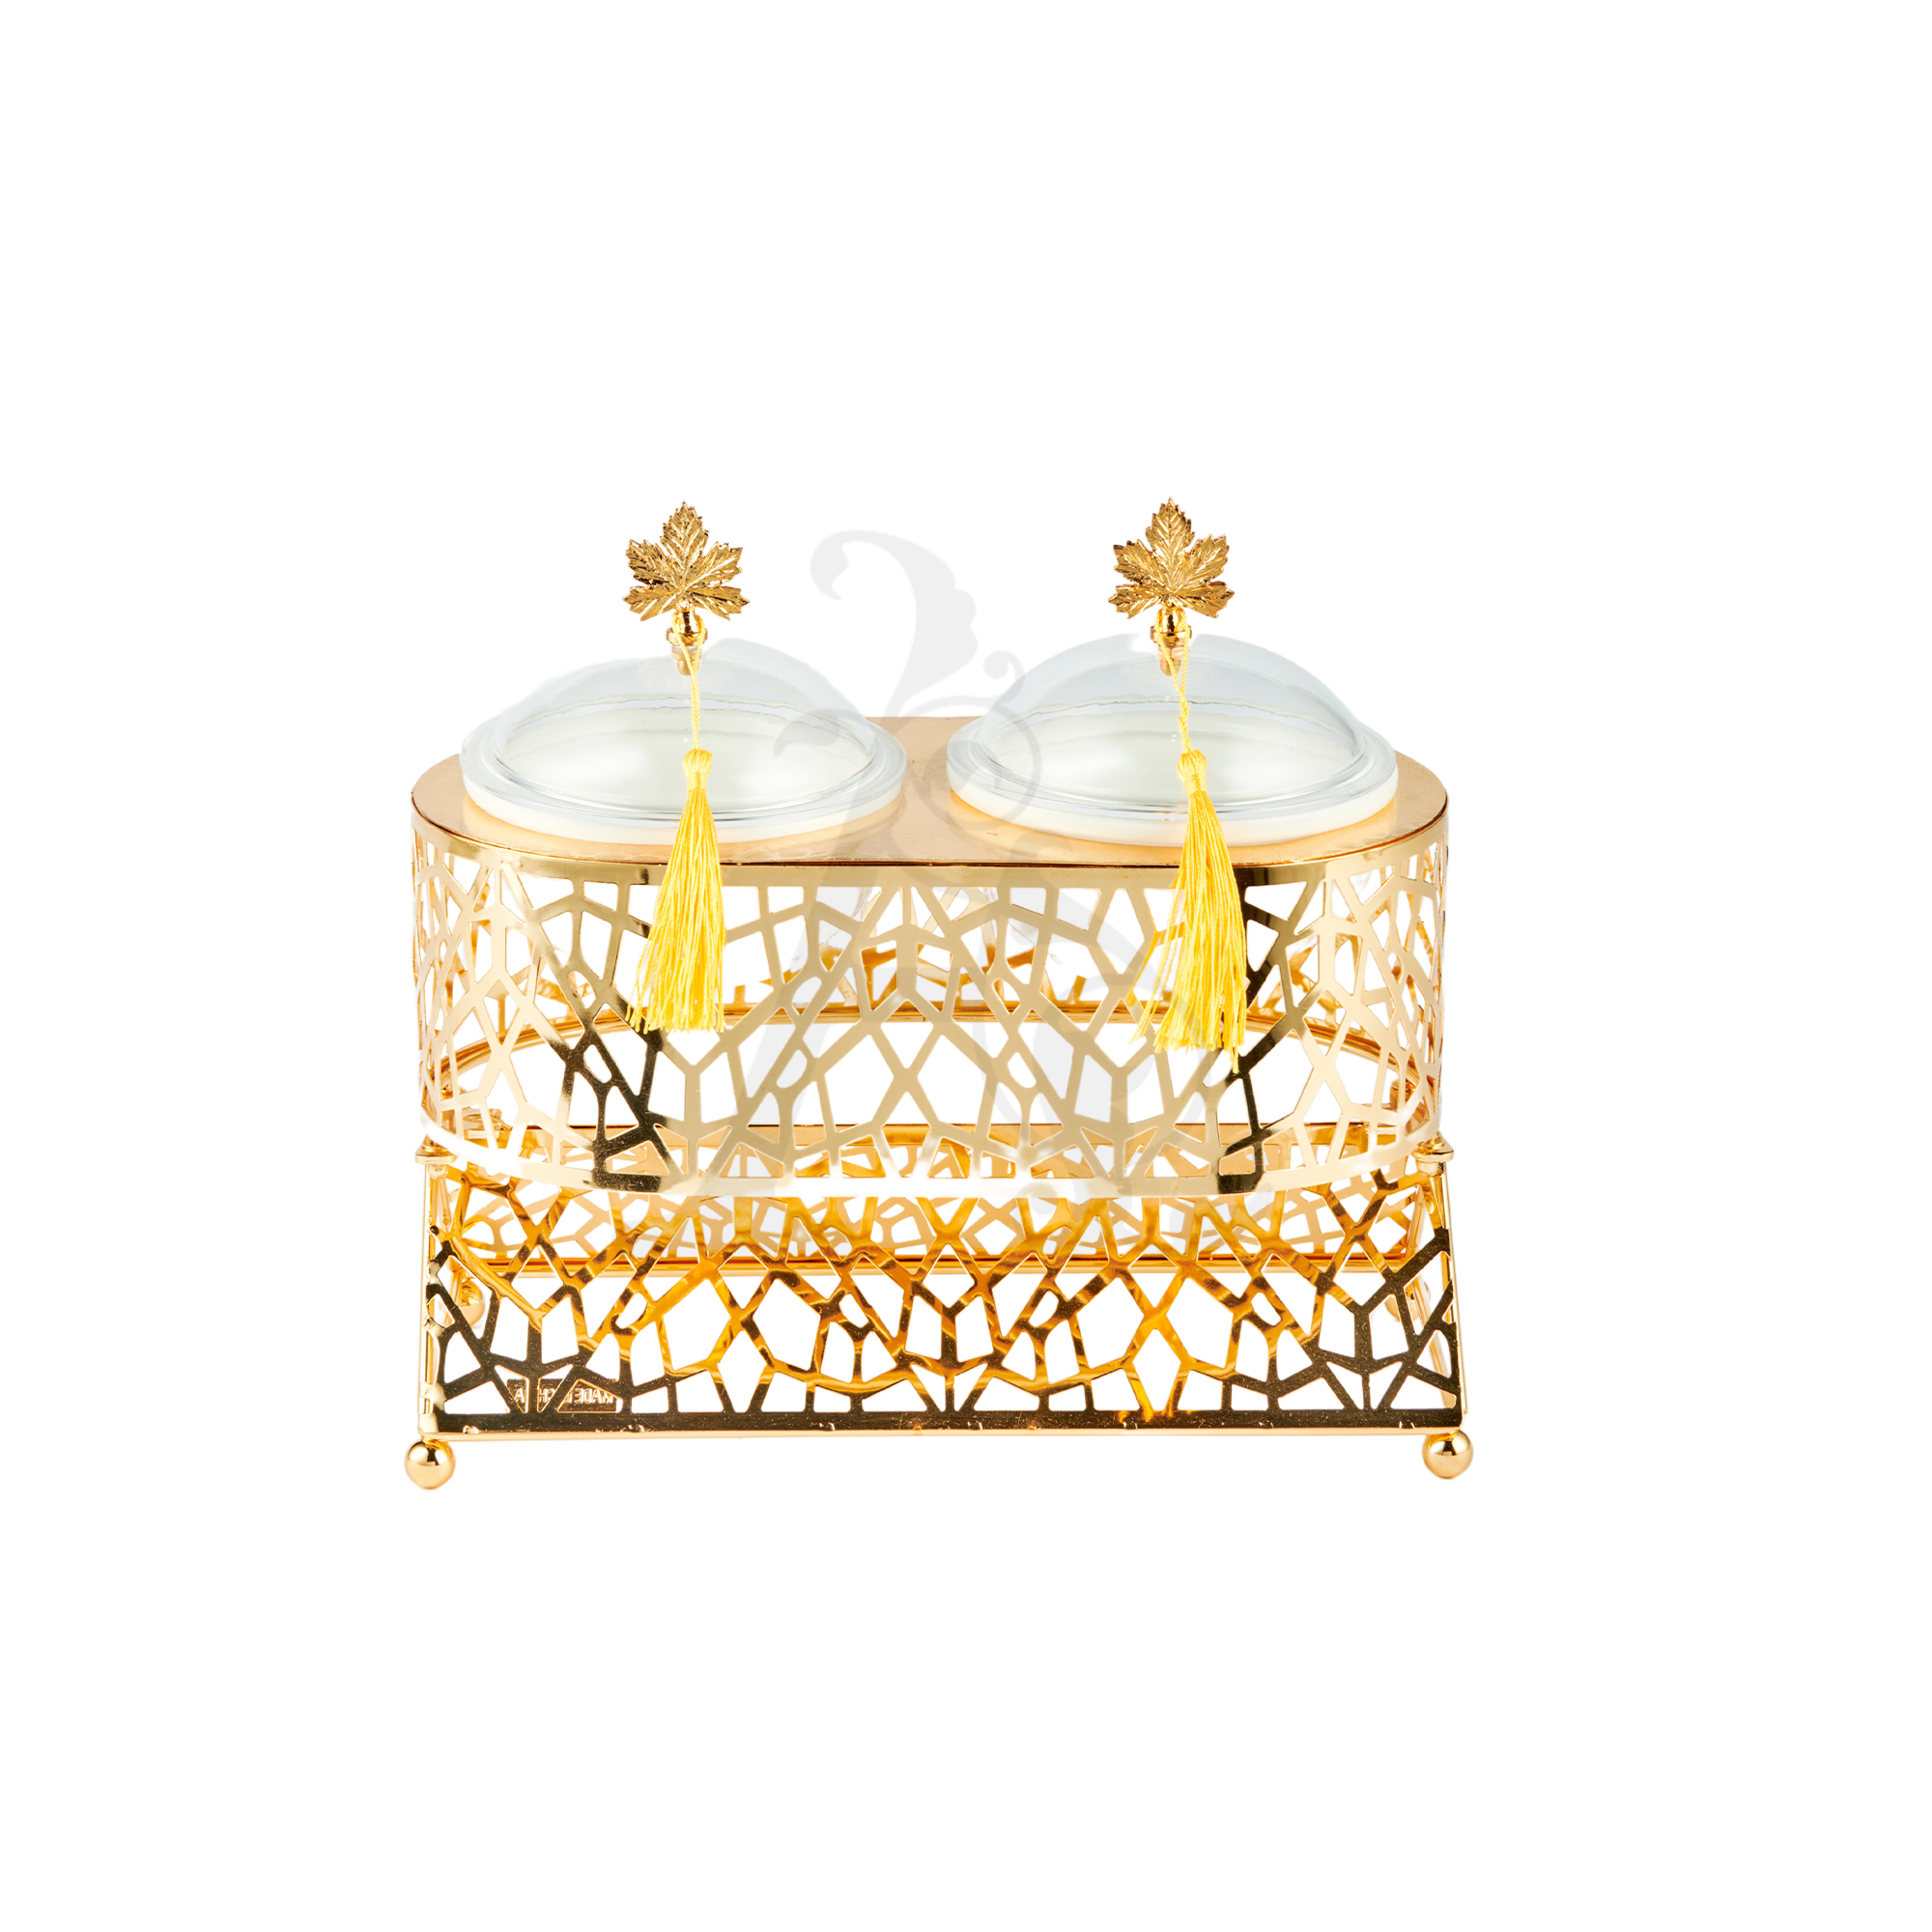 Buy Delight Servers with Base 2 Tall Pieces Gold and White 28x15